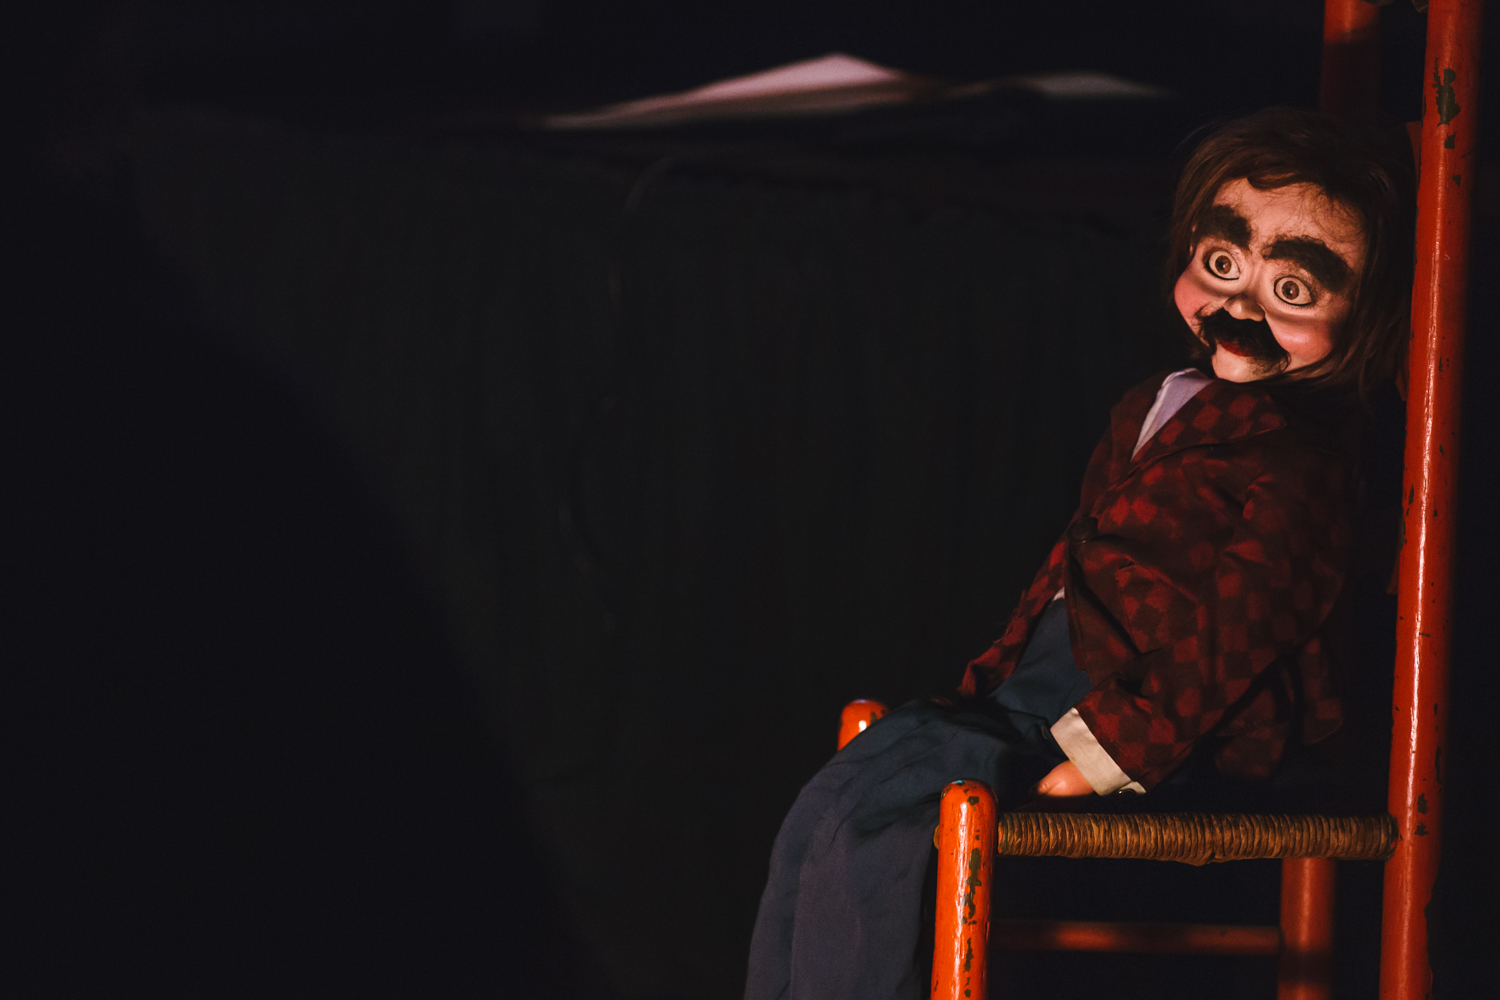 Photos Undead Cabaret Takes A Slightly Cynical Take On